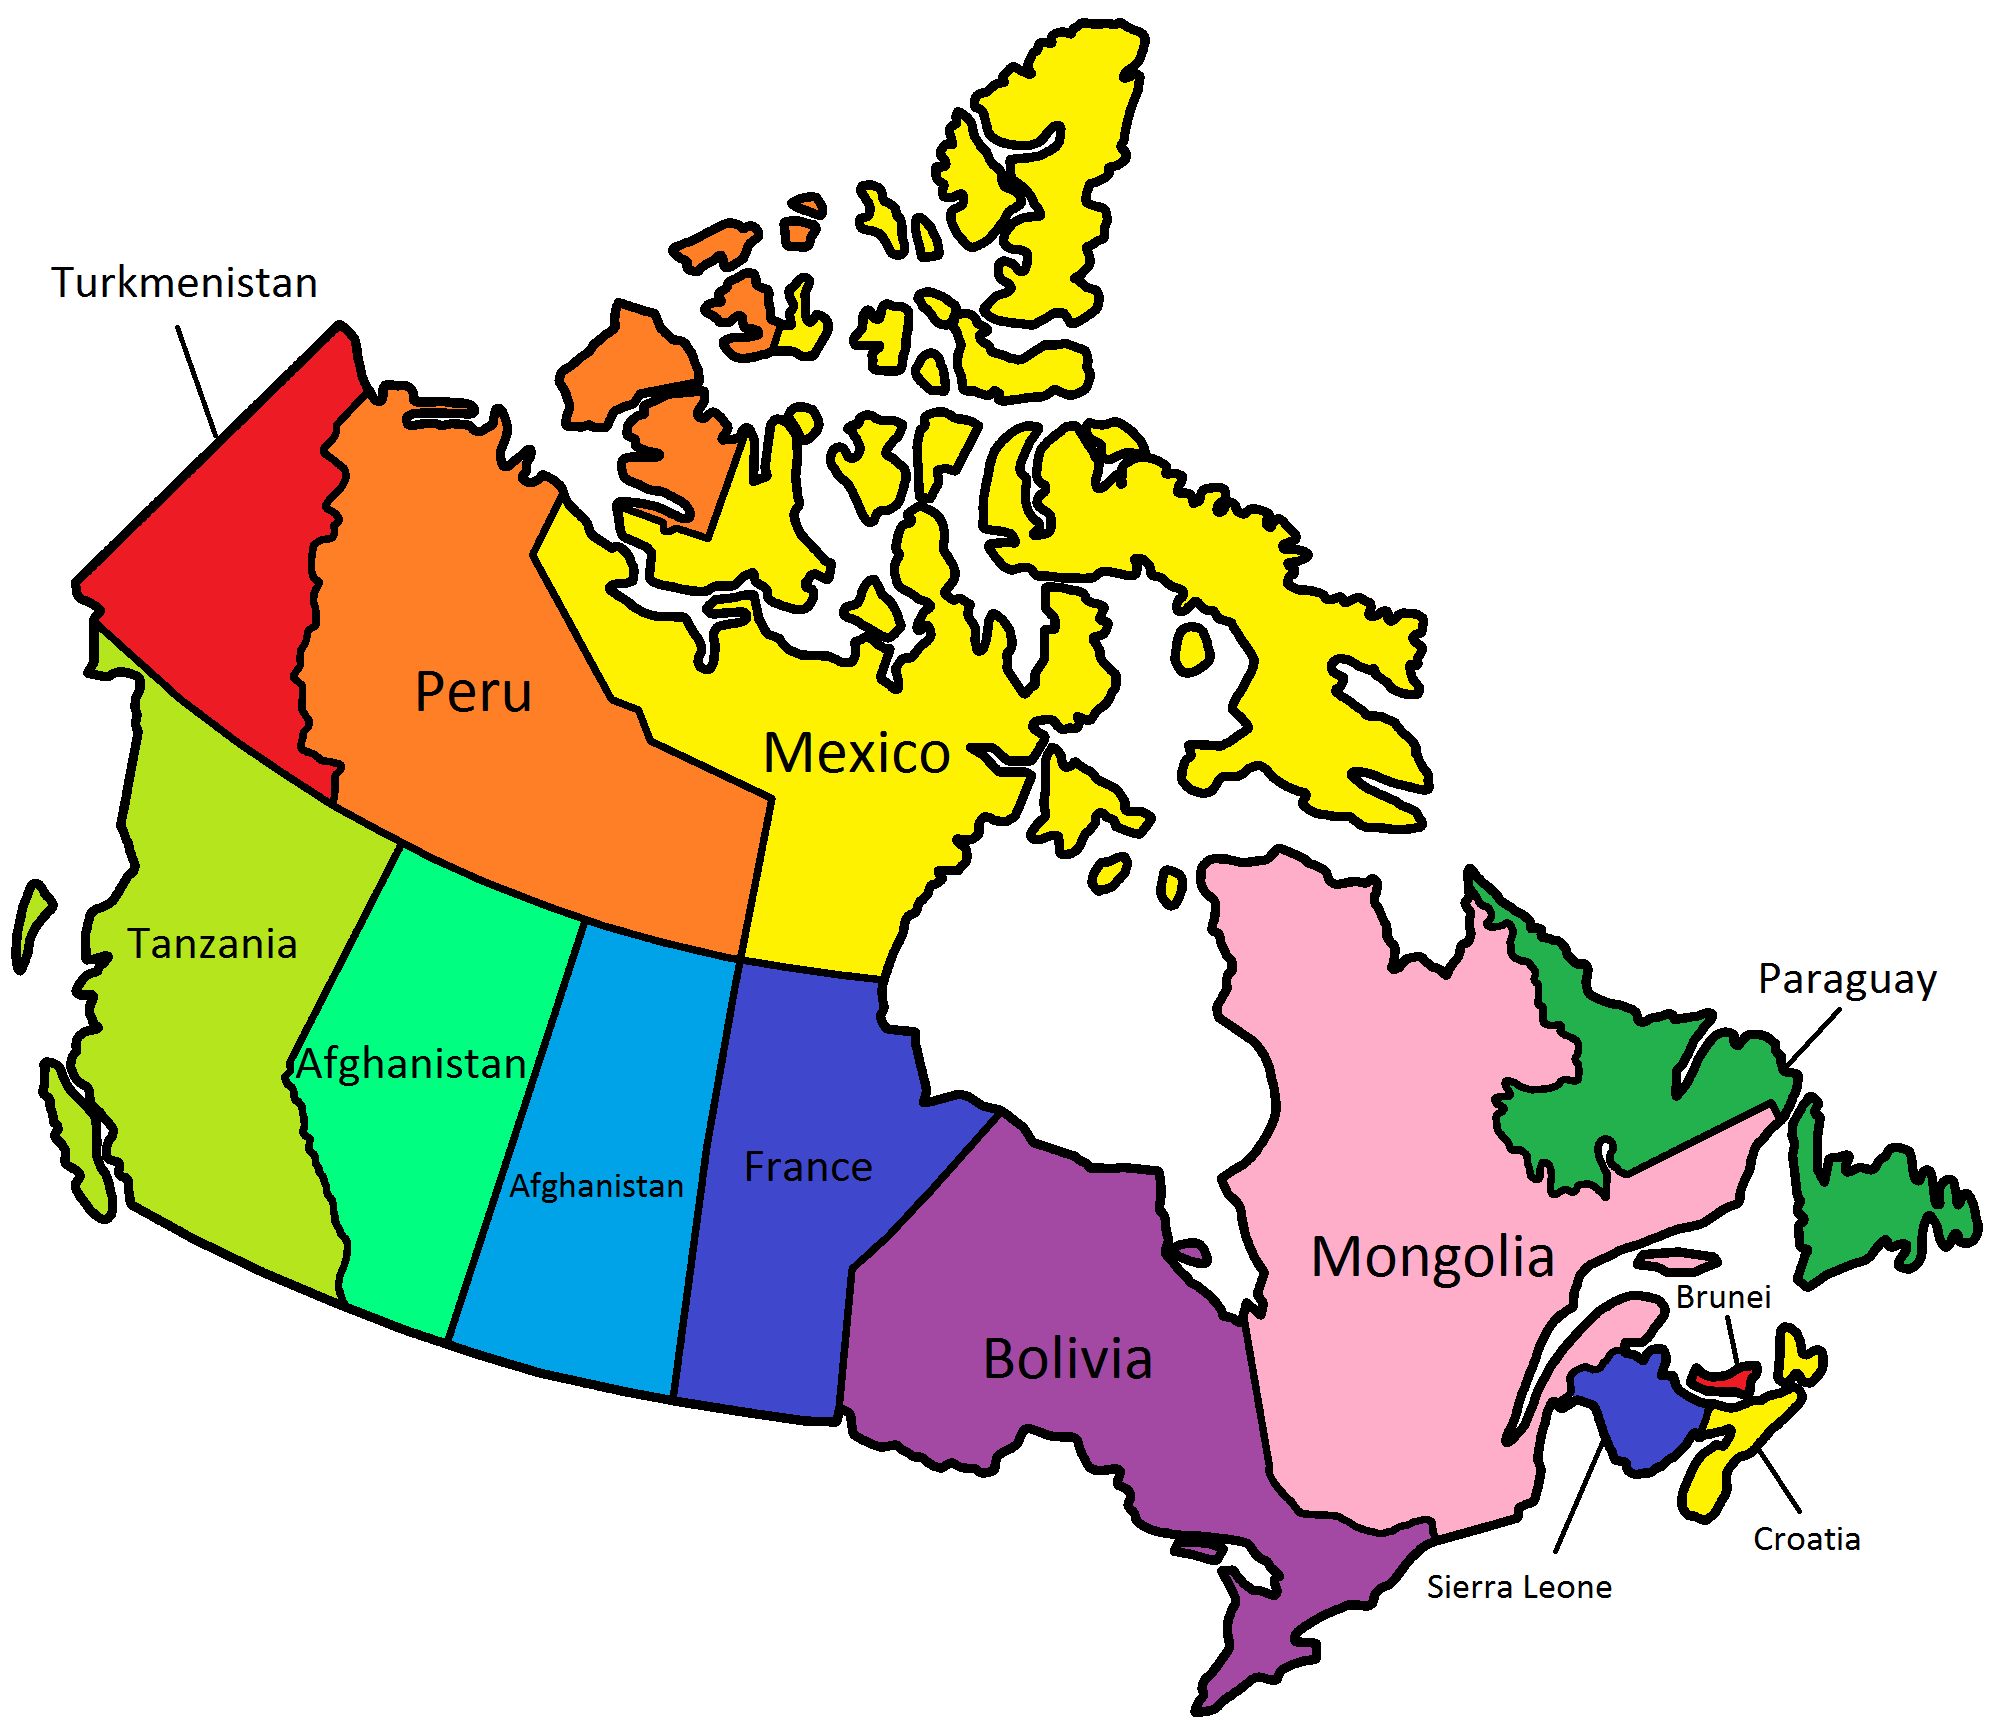 Canadian Provinces And Territories Compared To Countries